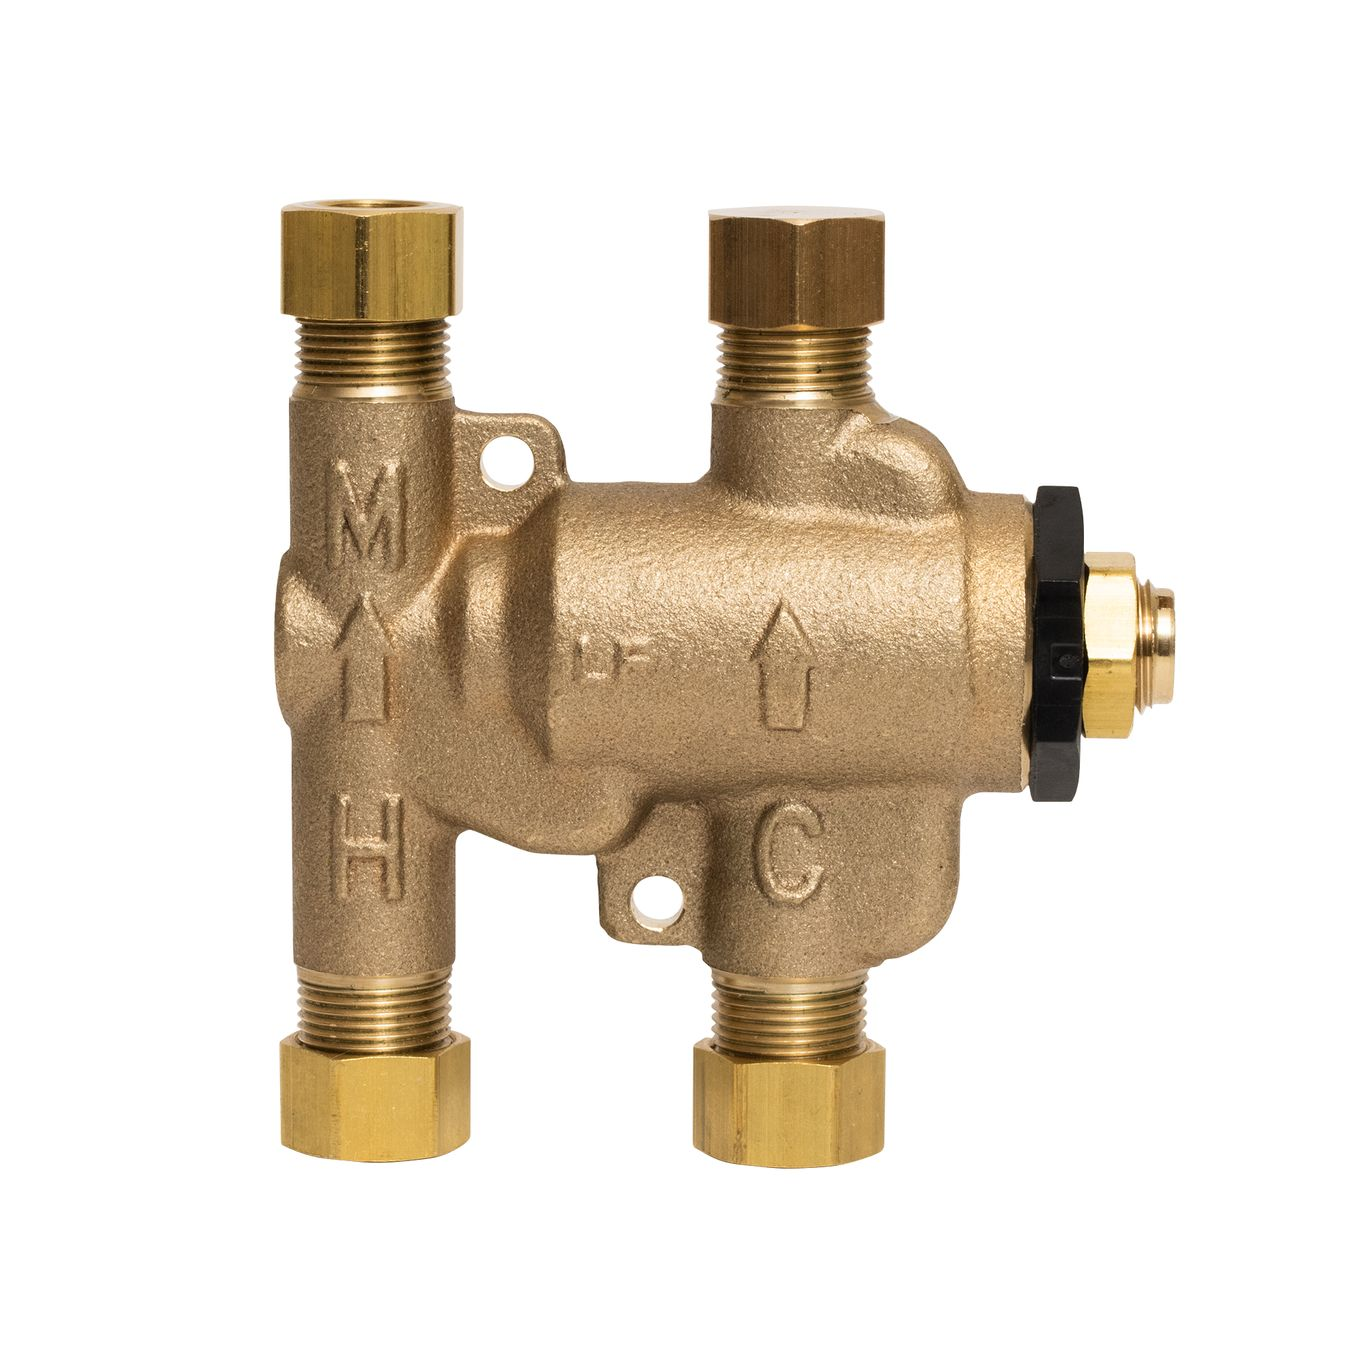 hight resolution of size 3 8 10mm lead free under sink guardian thermostatic mixing valves